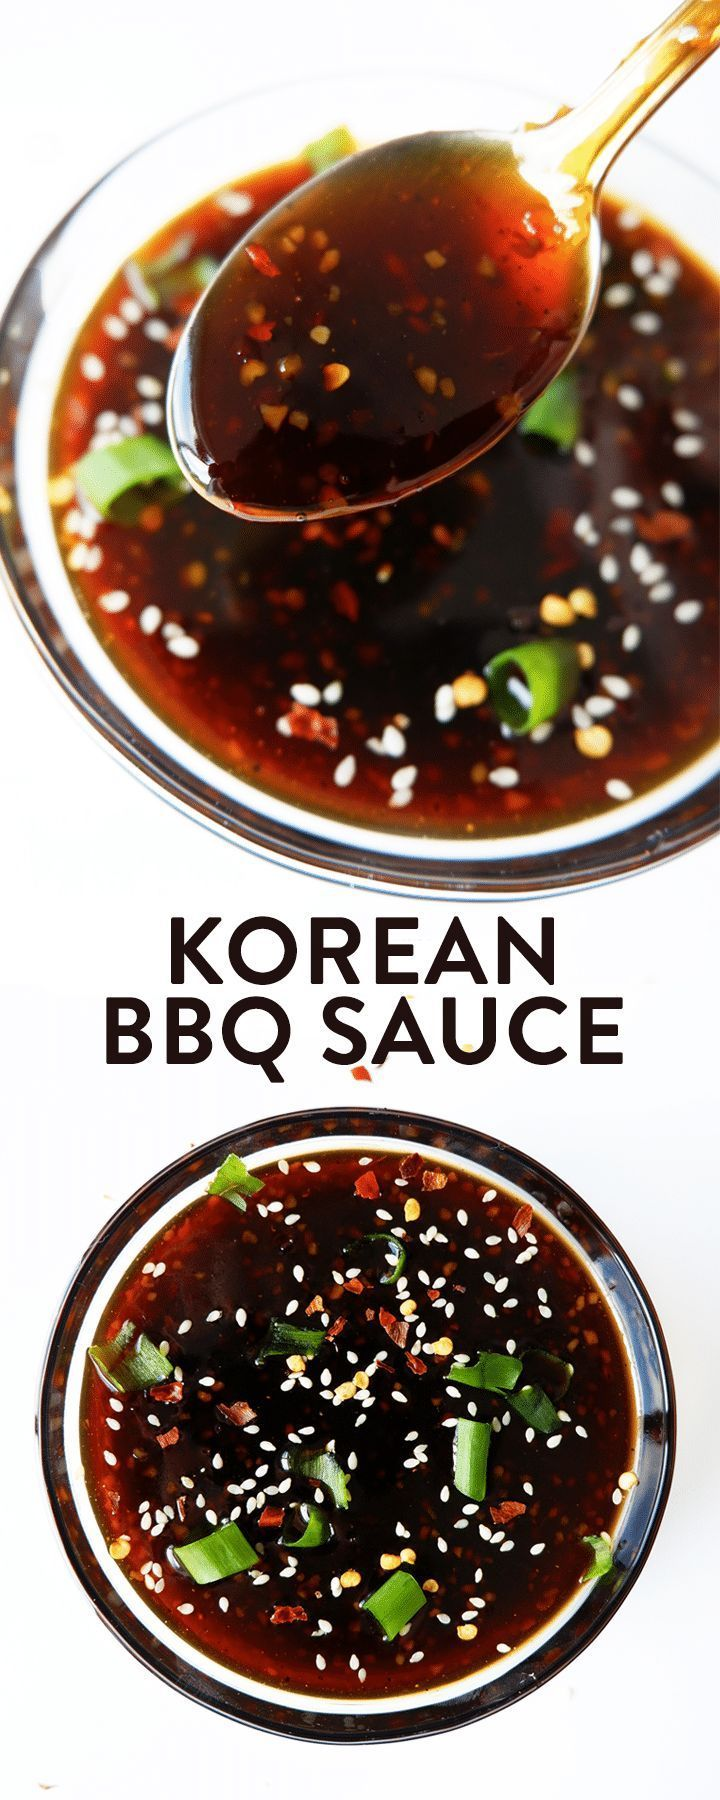 This Korean Barbecue Sauce recipe is so simple to throw together. I love the toasted sesame oil, Sambal Oelek, and brown sugar. It's sweet, spicy, and salty. This Korean BBQ Sauce is delicious on grilled chicken, BBQ steak, and makes a yummy vegetarian st